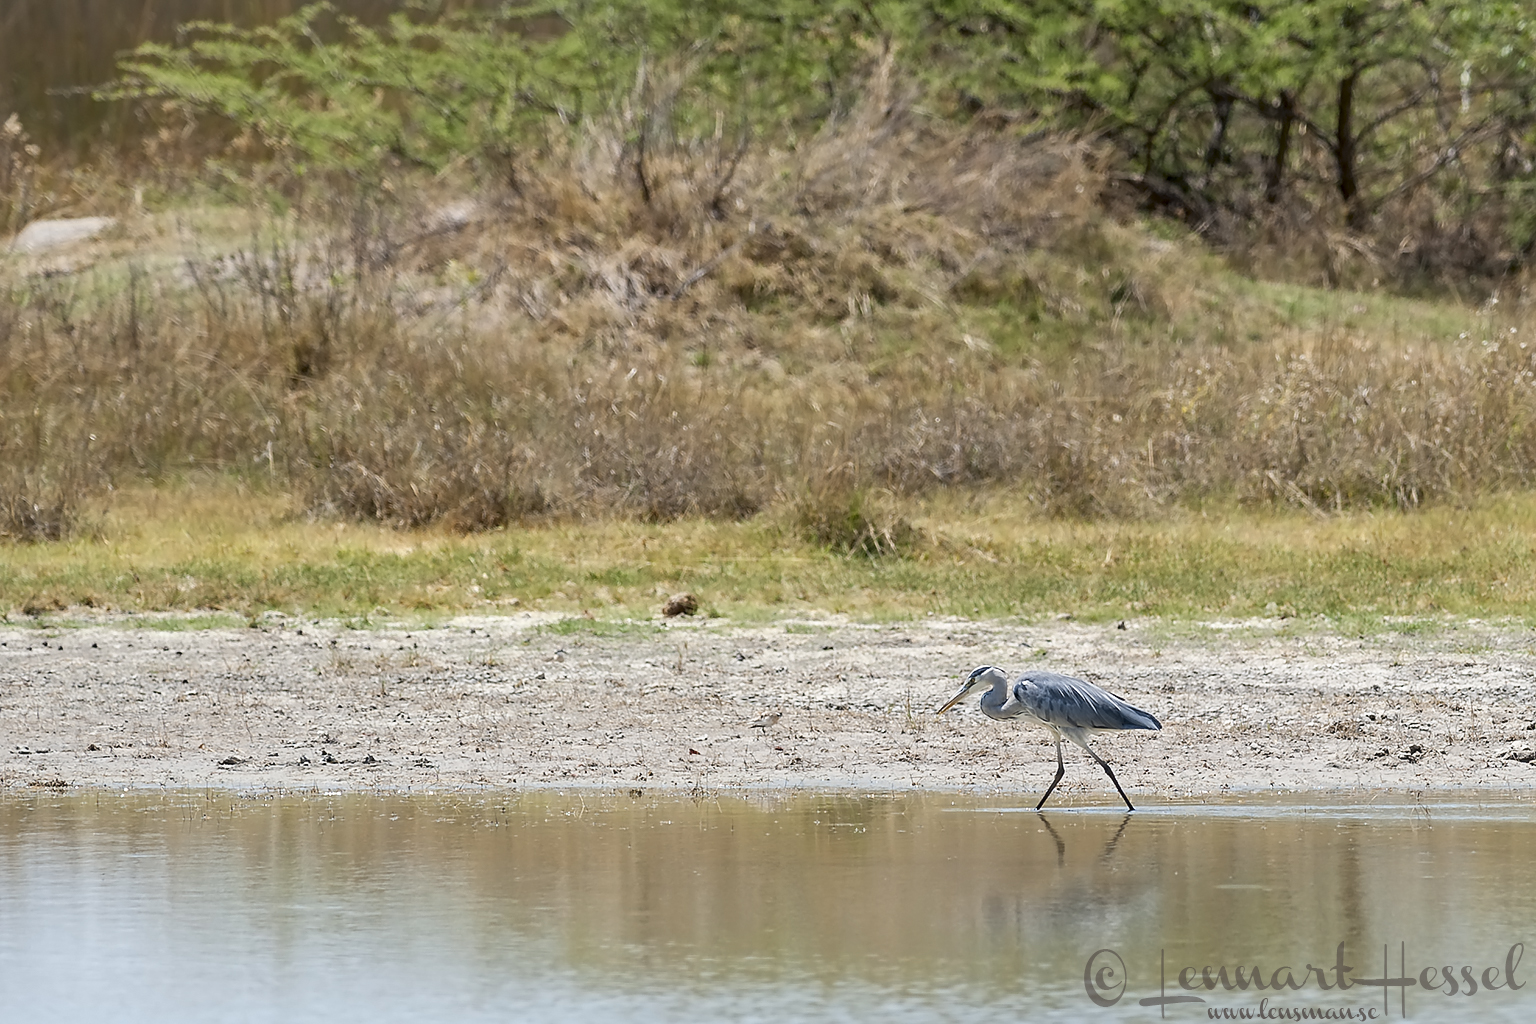 Grey Heron in Moremi Game Reserve, Botswana